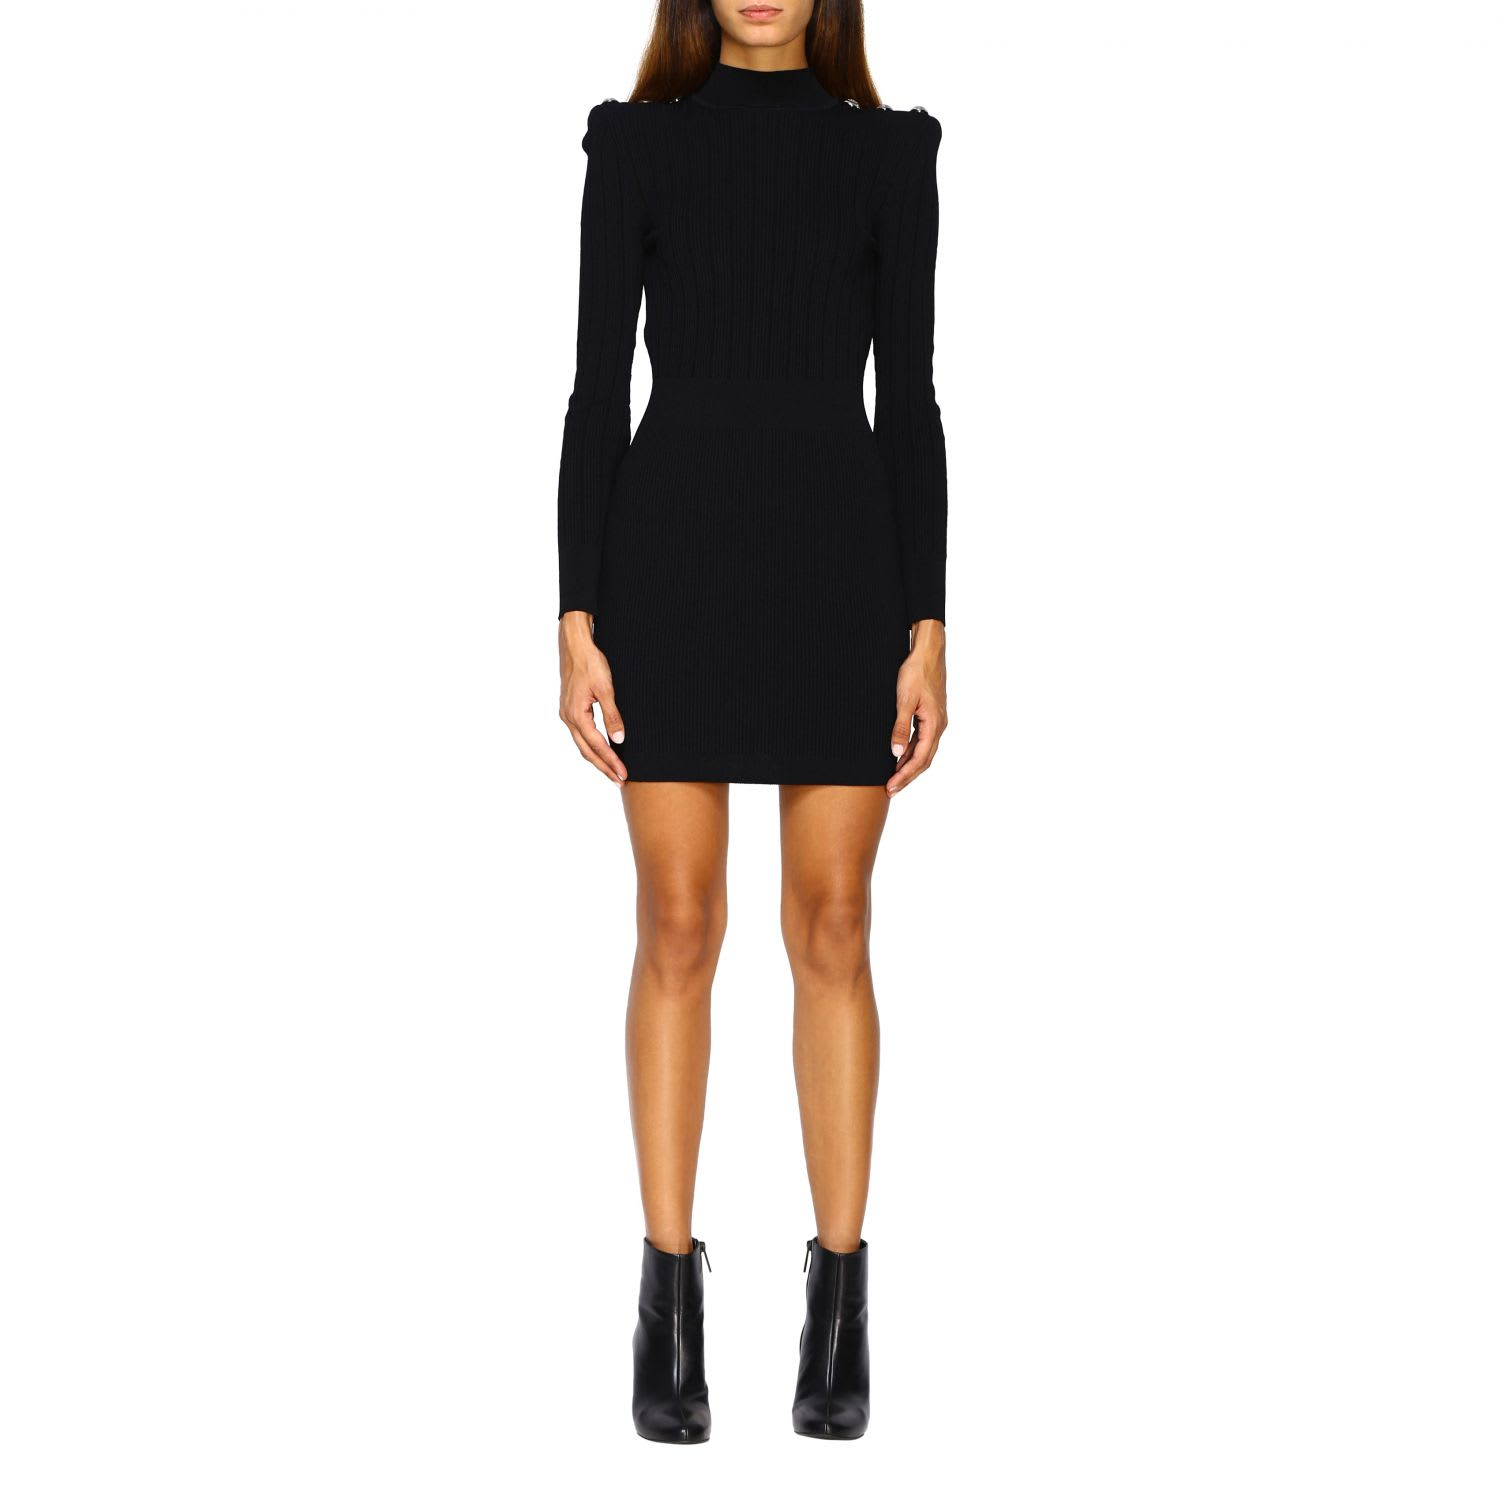 Buy Balmain Dress Balmain Knit Dress With Jewel Buttons online, shop Balmain with free shipping